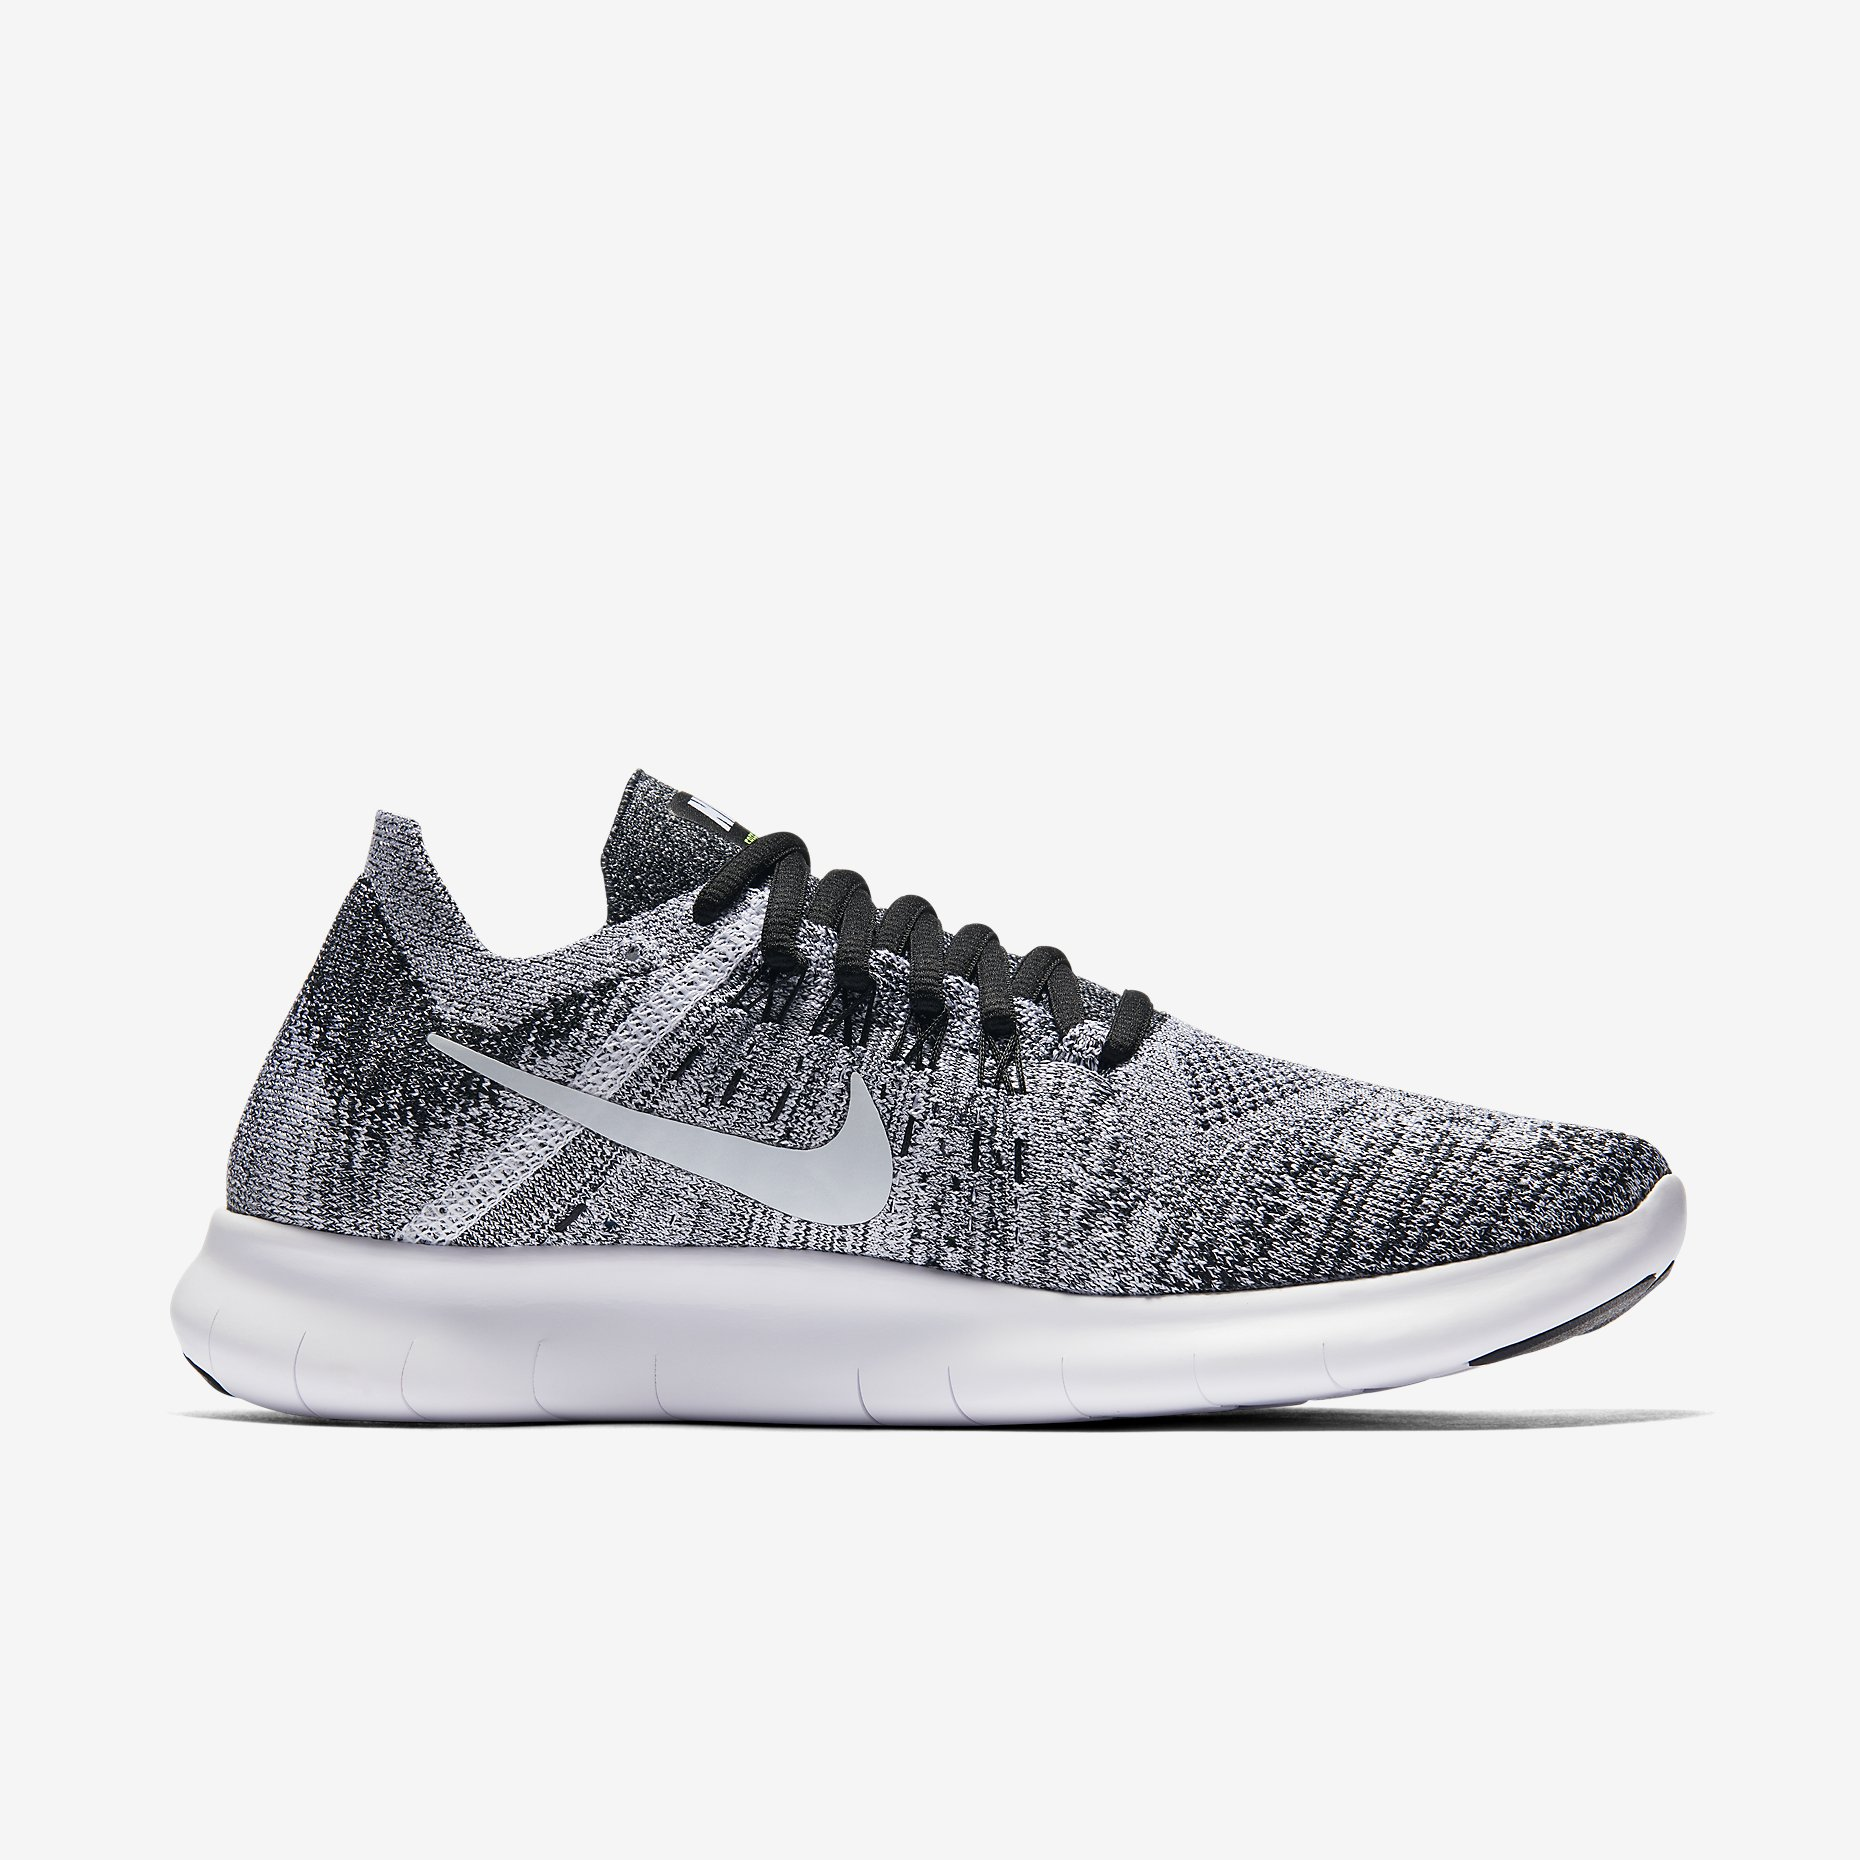 301addec99692 Nike Free RN Flyknit 2017 Women's Running Shoes - Alton Sports